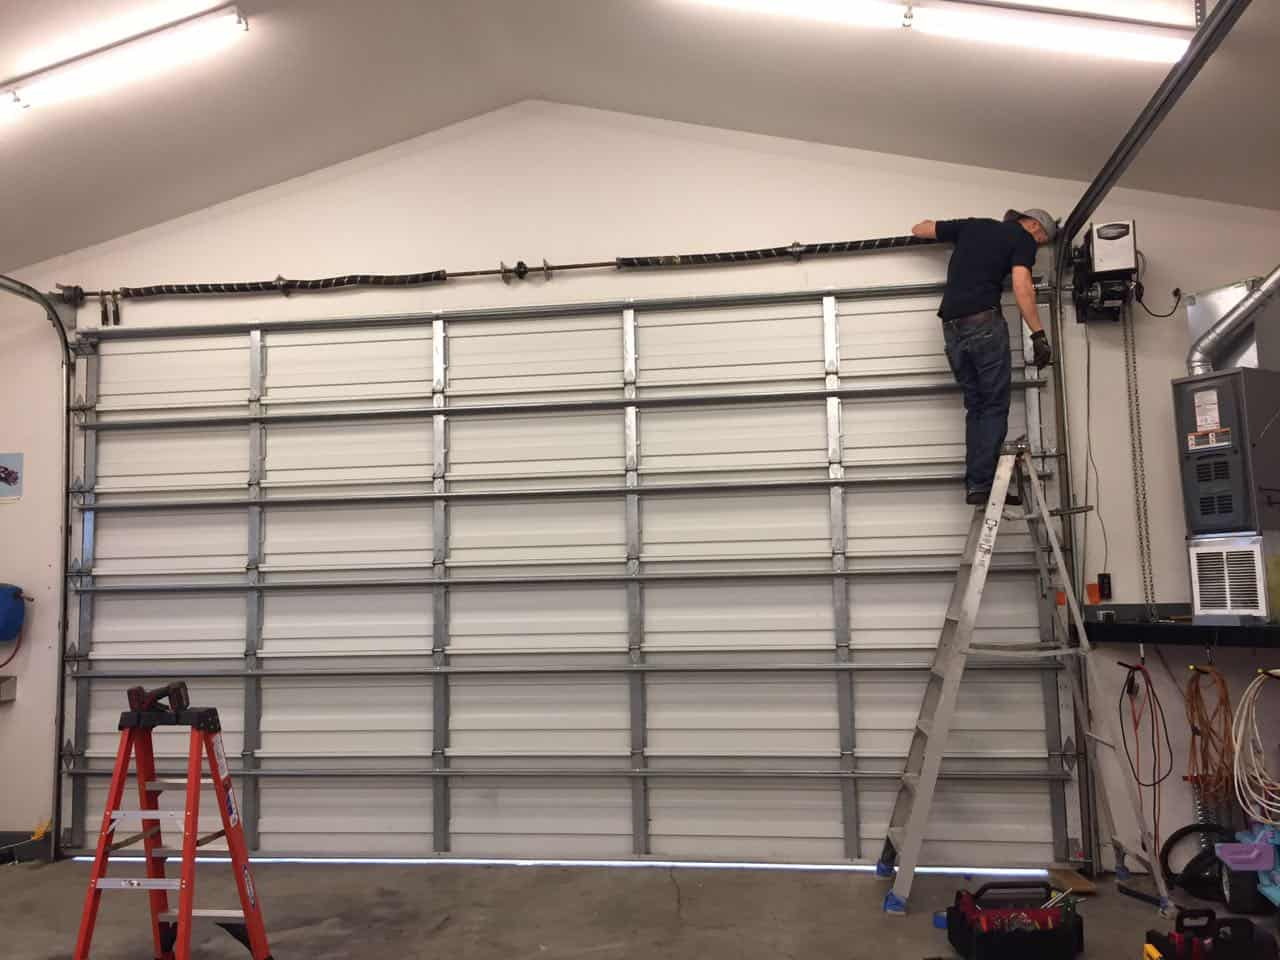 Commercial Garage Door Repair In Clackamas OR By ETS Garage Door Of Portland OR